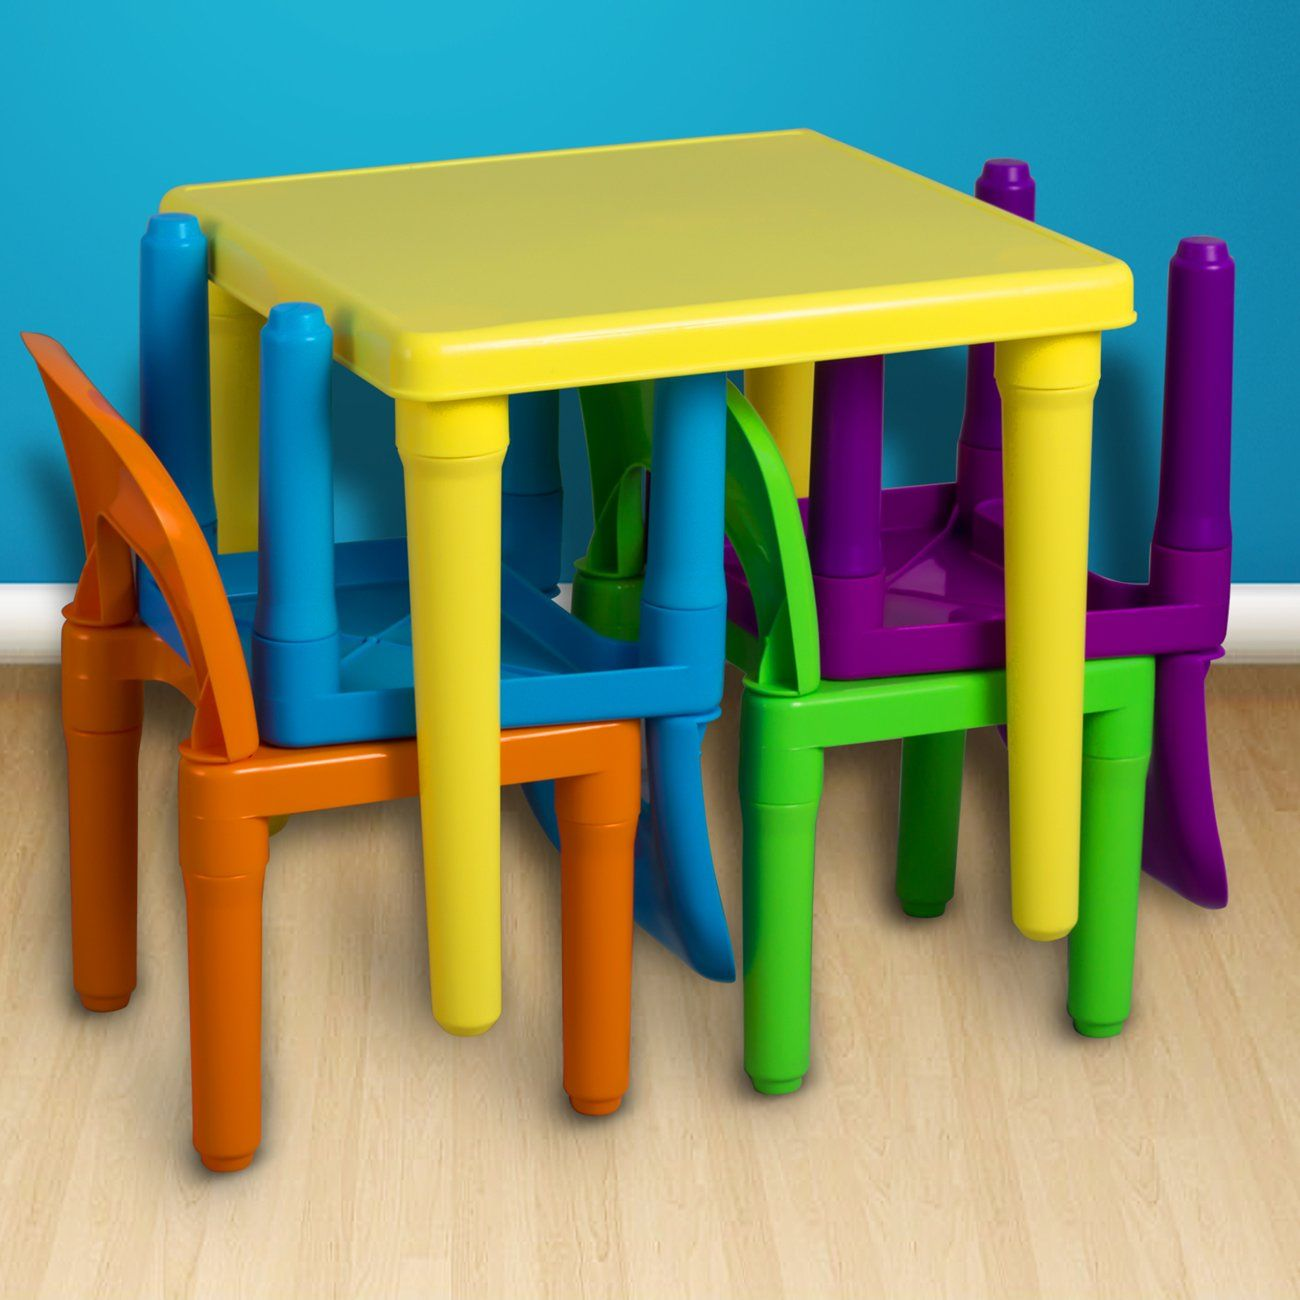 Kids Table And Chairs Set Toddler Activity Chair Best For Toddlers Lego Reading Train Art Playroo Kids Plastic Chairs Kids Table And Chairs Desk And Chair Set